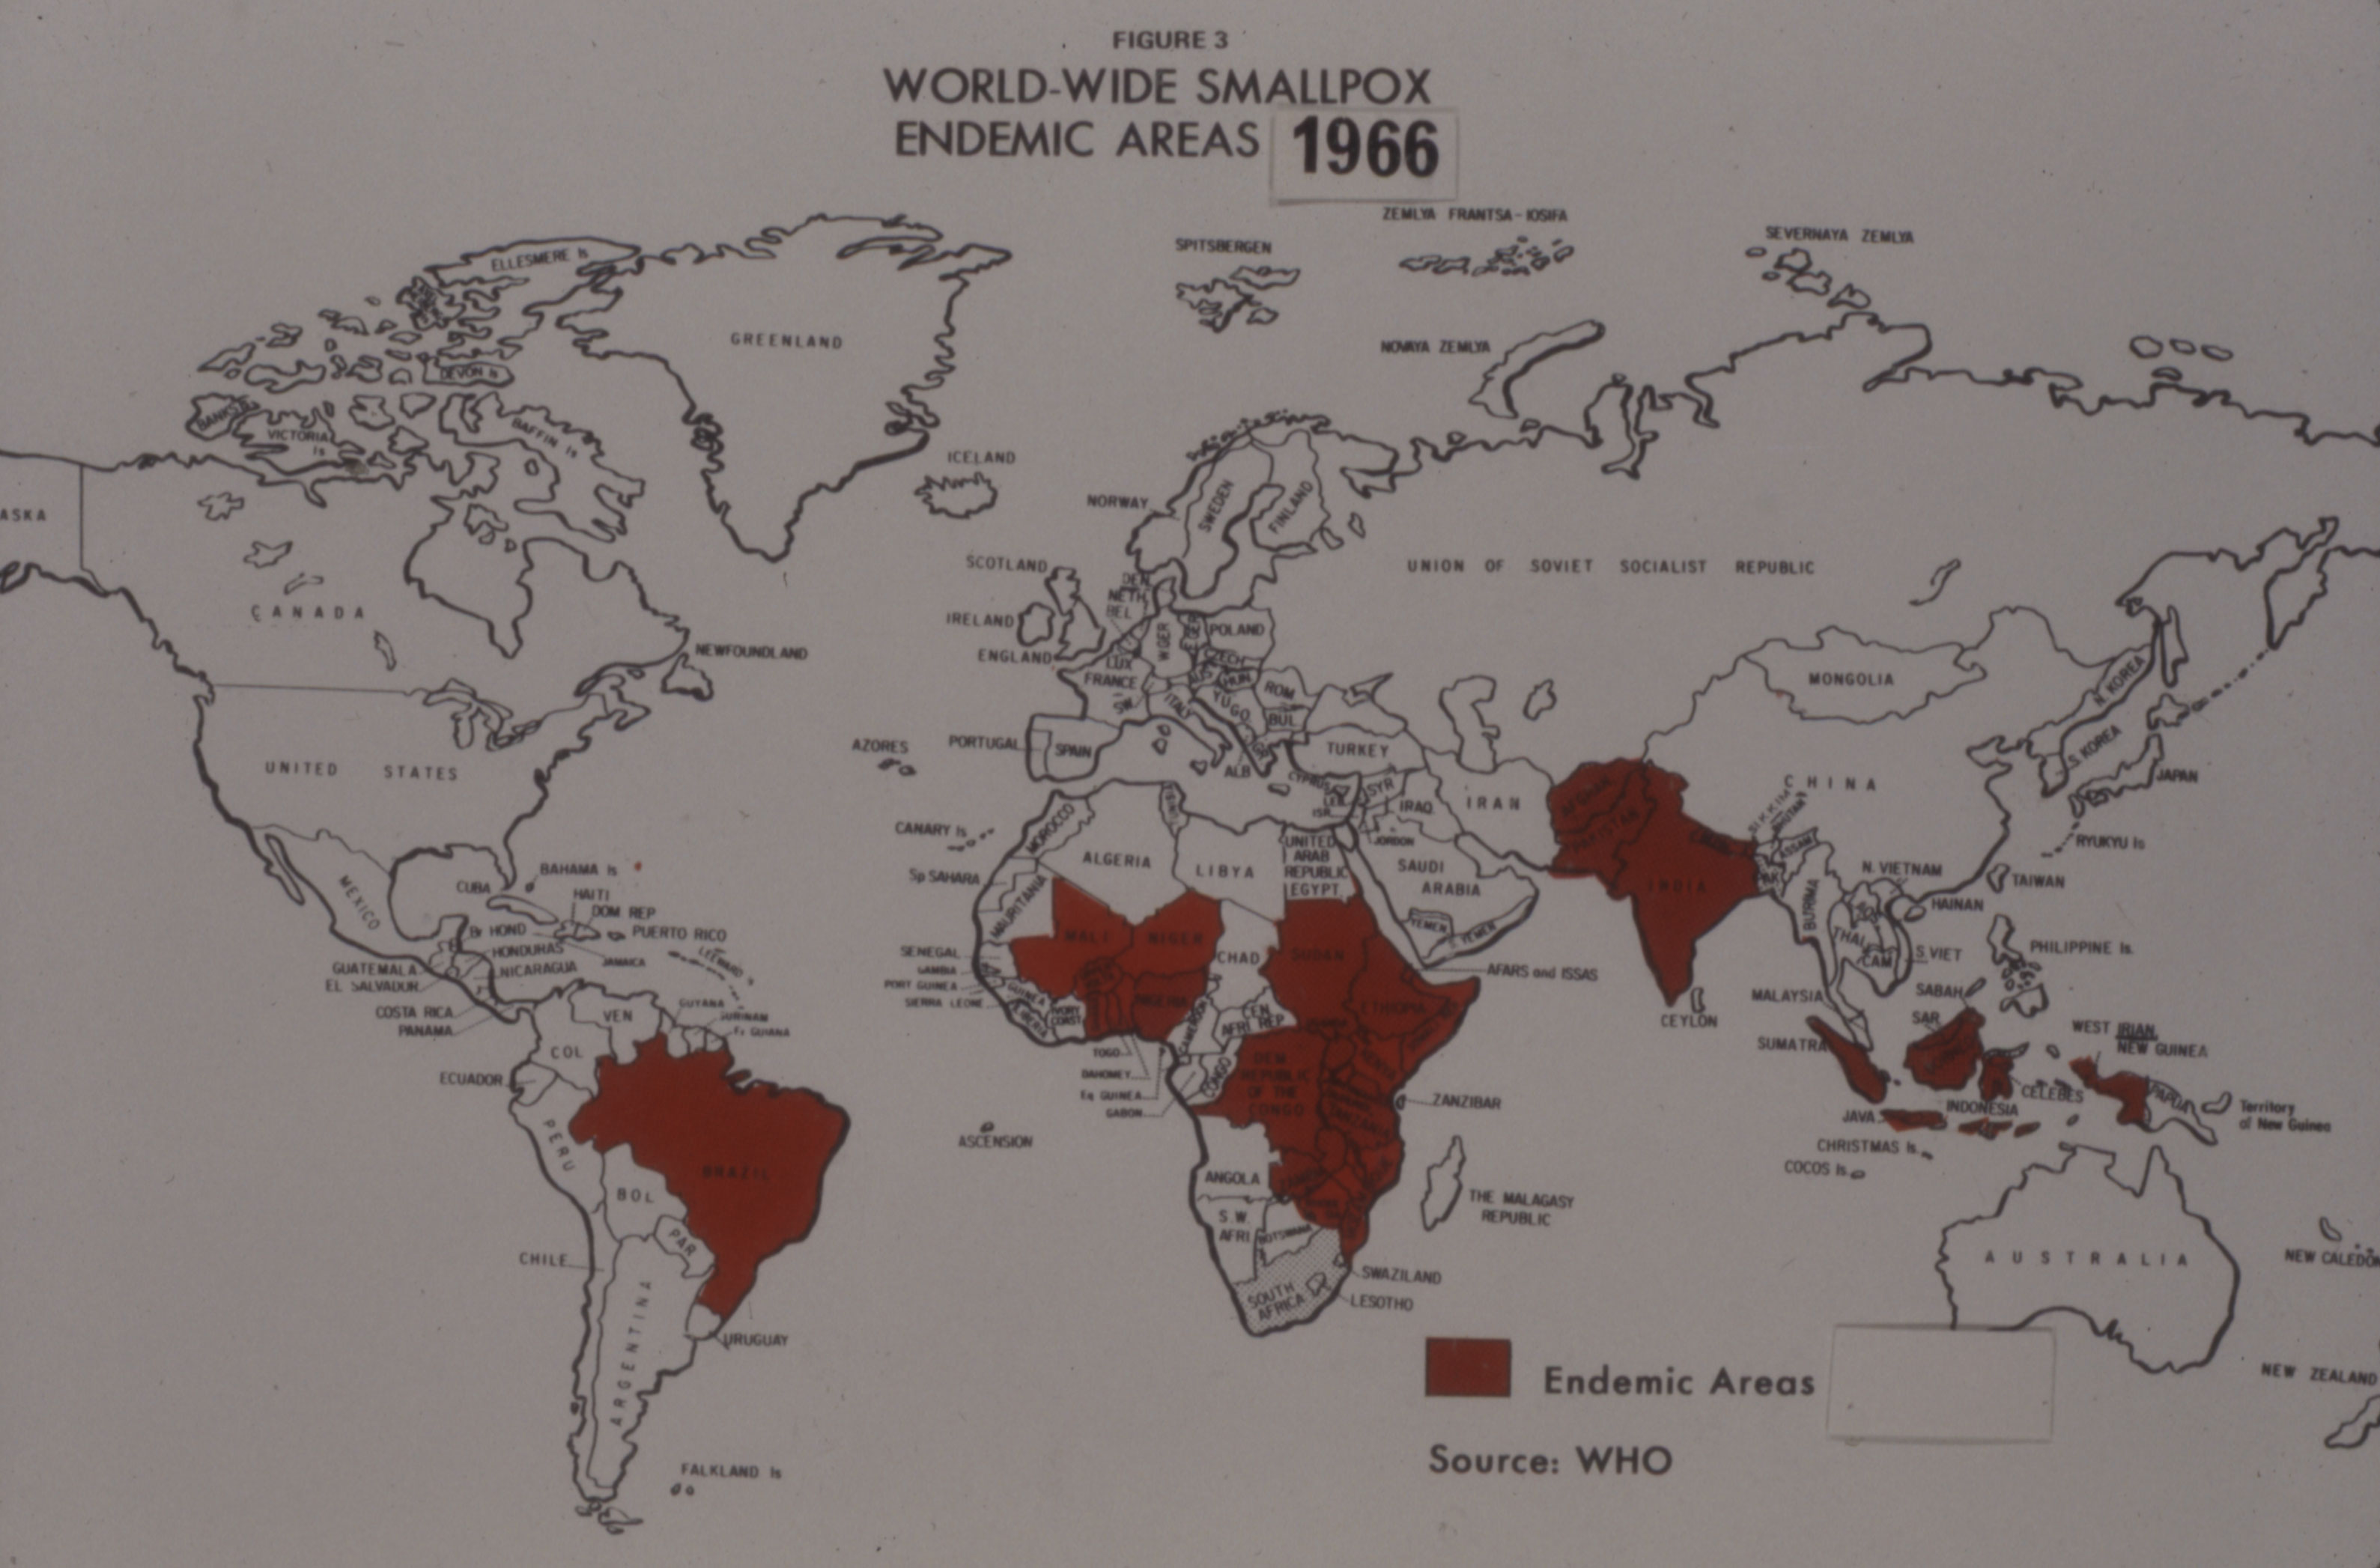 World map showing areas where smallpox was endemic in 1966.